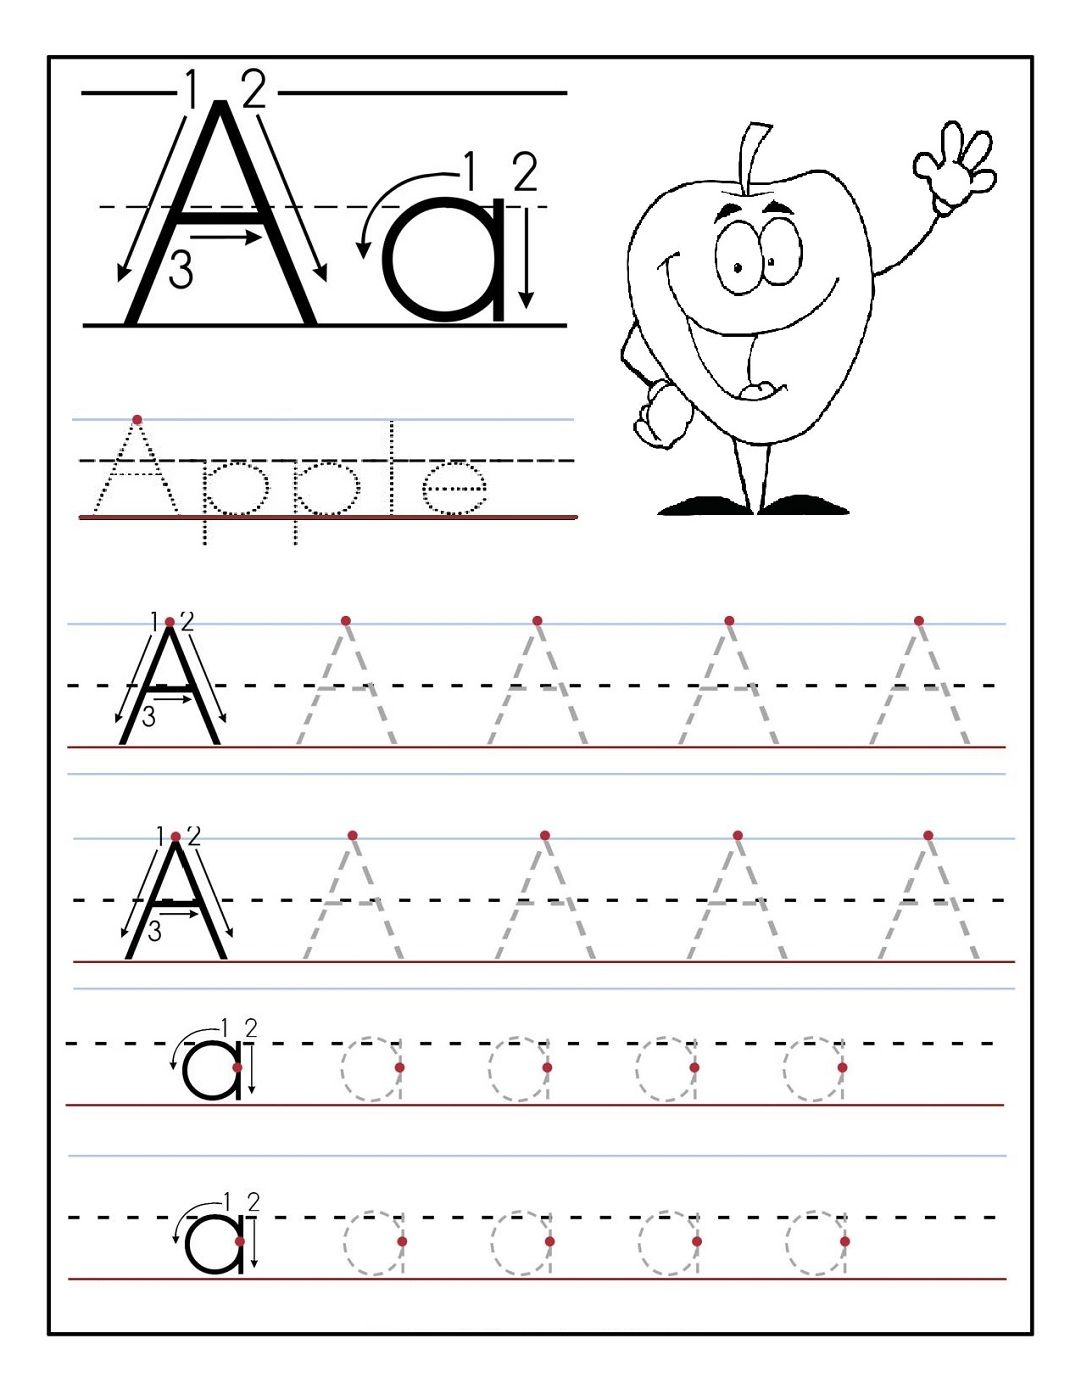 worksheet Letter A Worksheets For Preschoolers tracing the letter a free printable activity shelter alphabet preschool worksheets